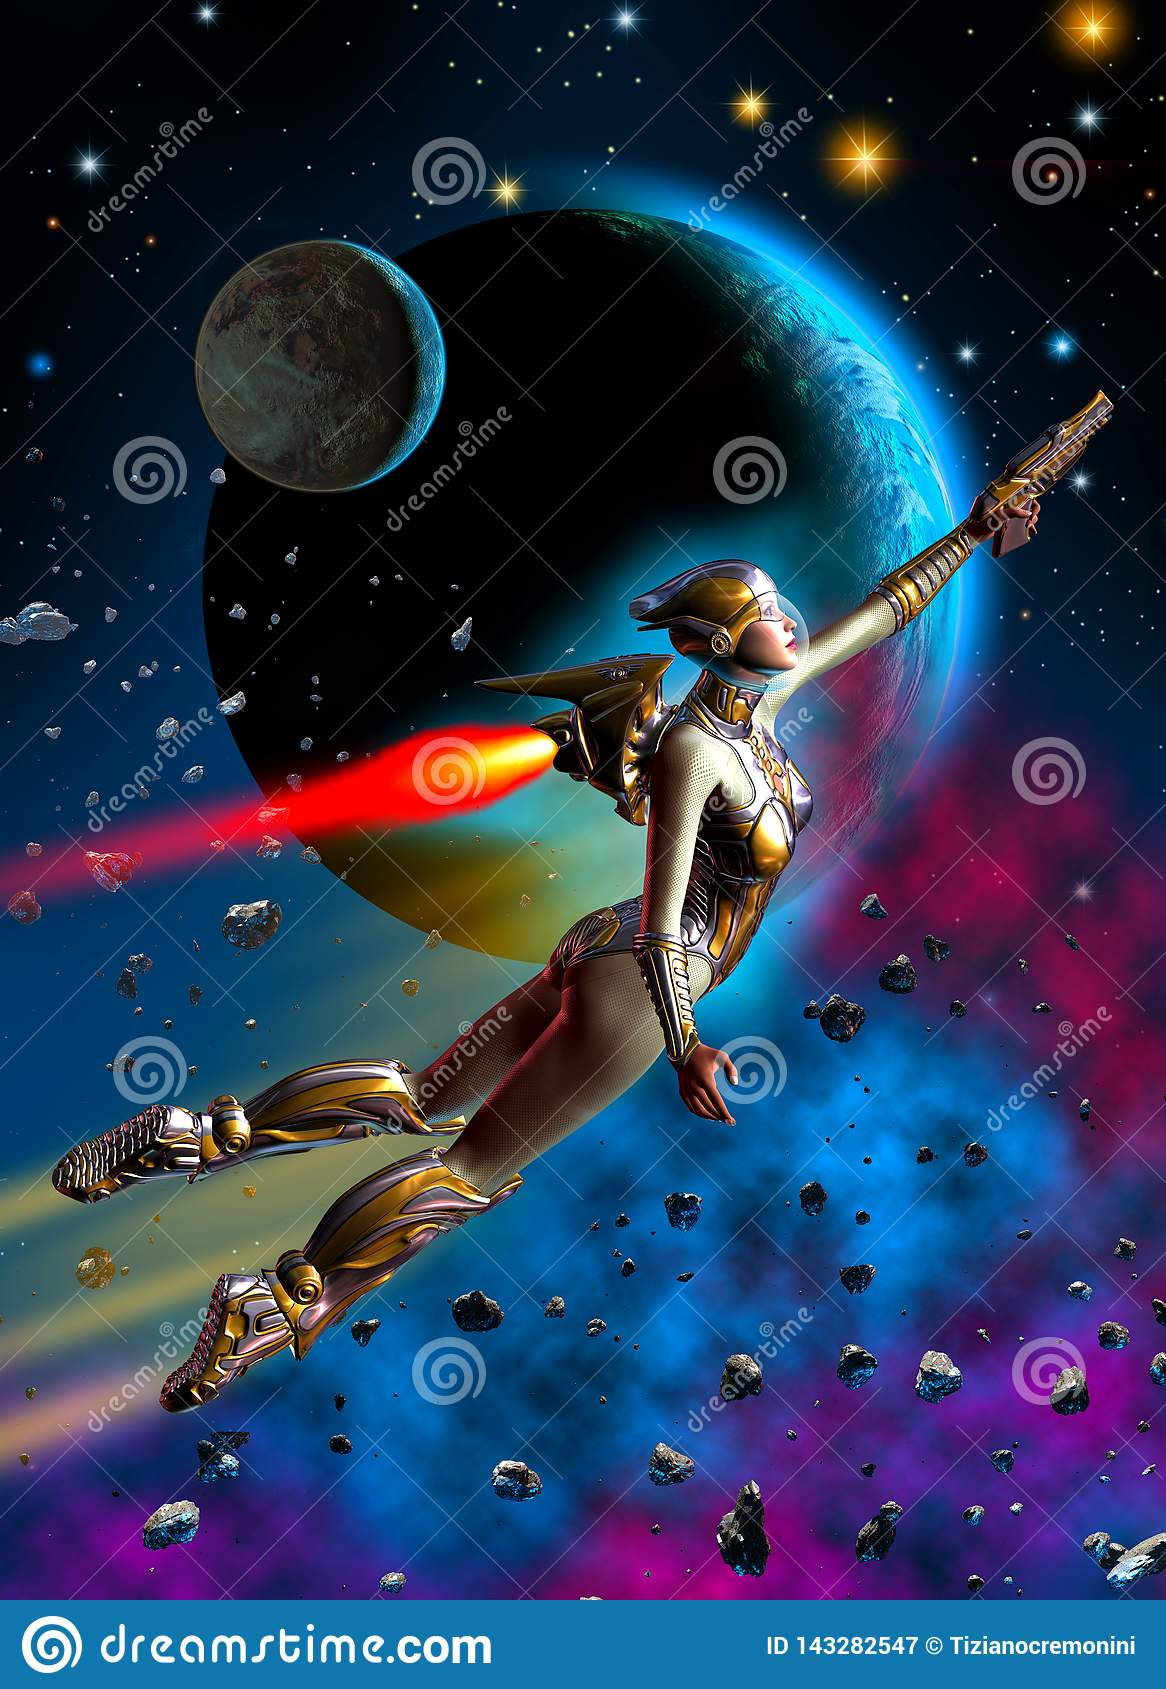 Futuristic woman soldier flying in the outer space, in the background stars, planets, nebula and asteroids, 3d illustration